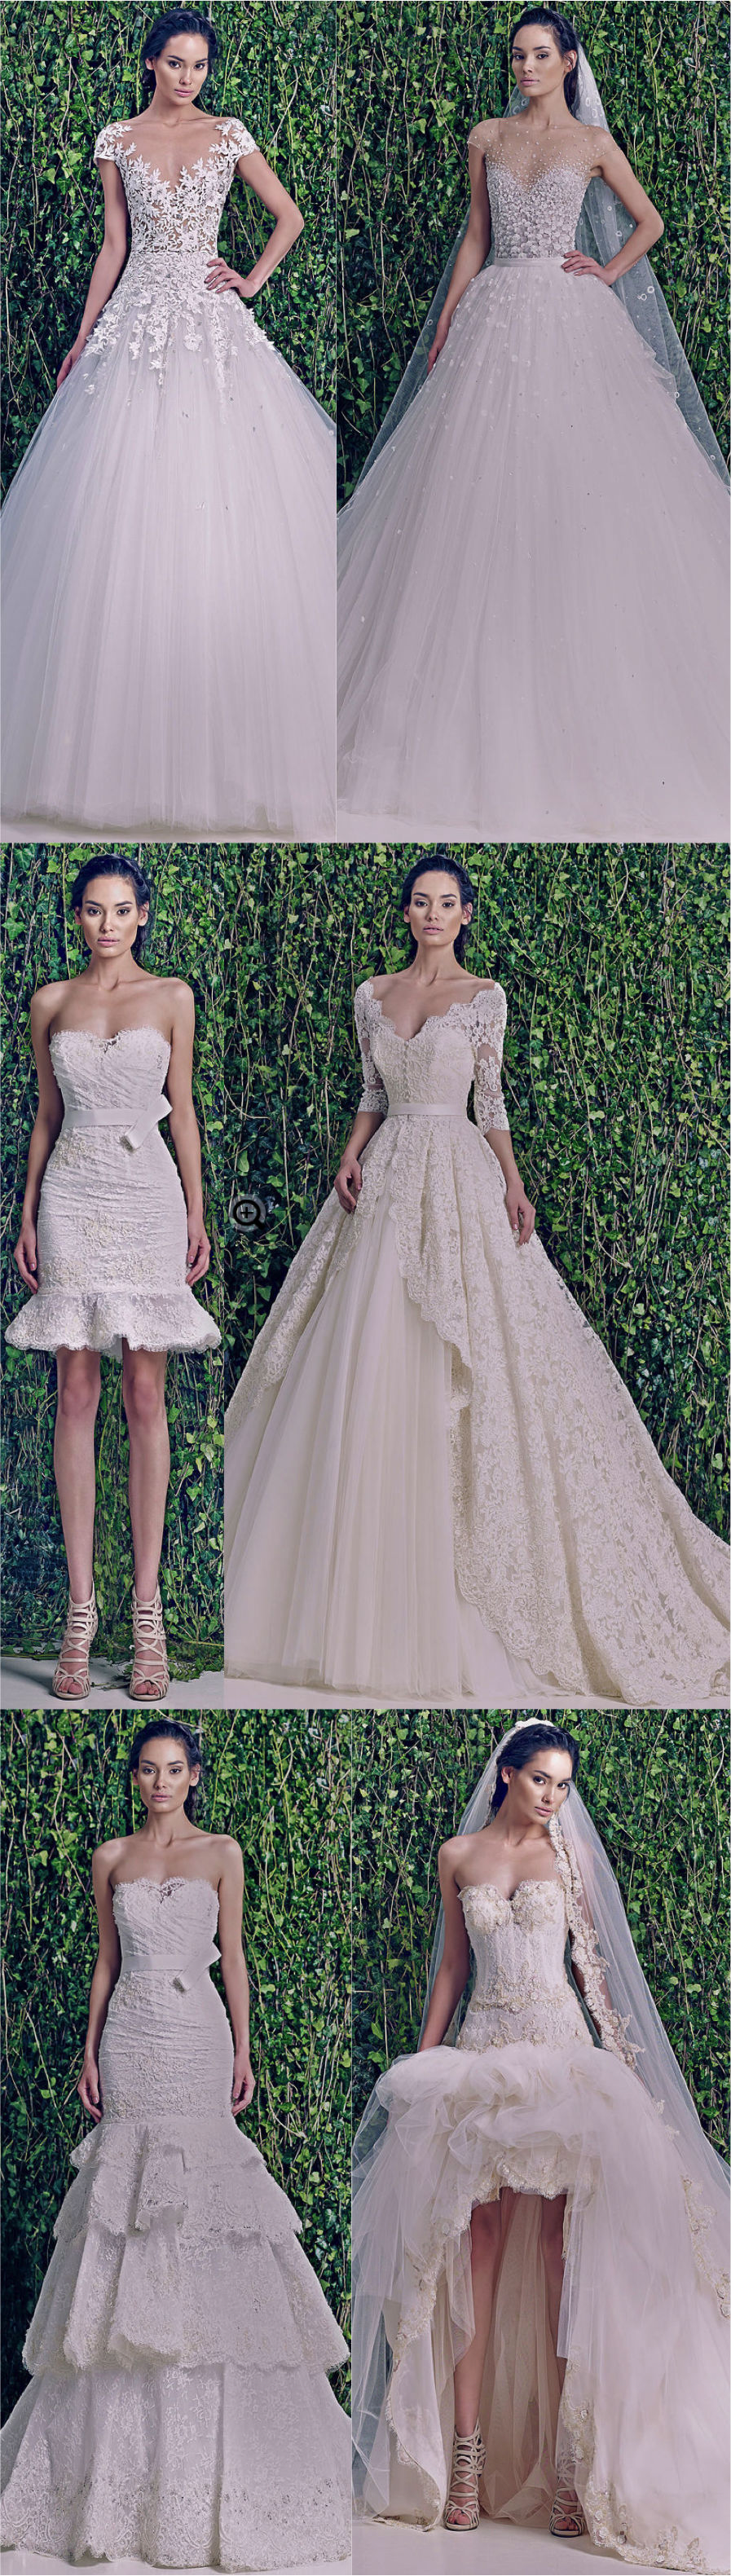 zuhair murad wedding dress noiva 3